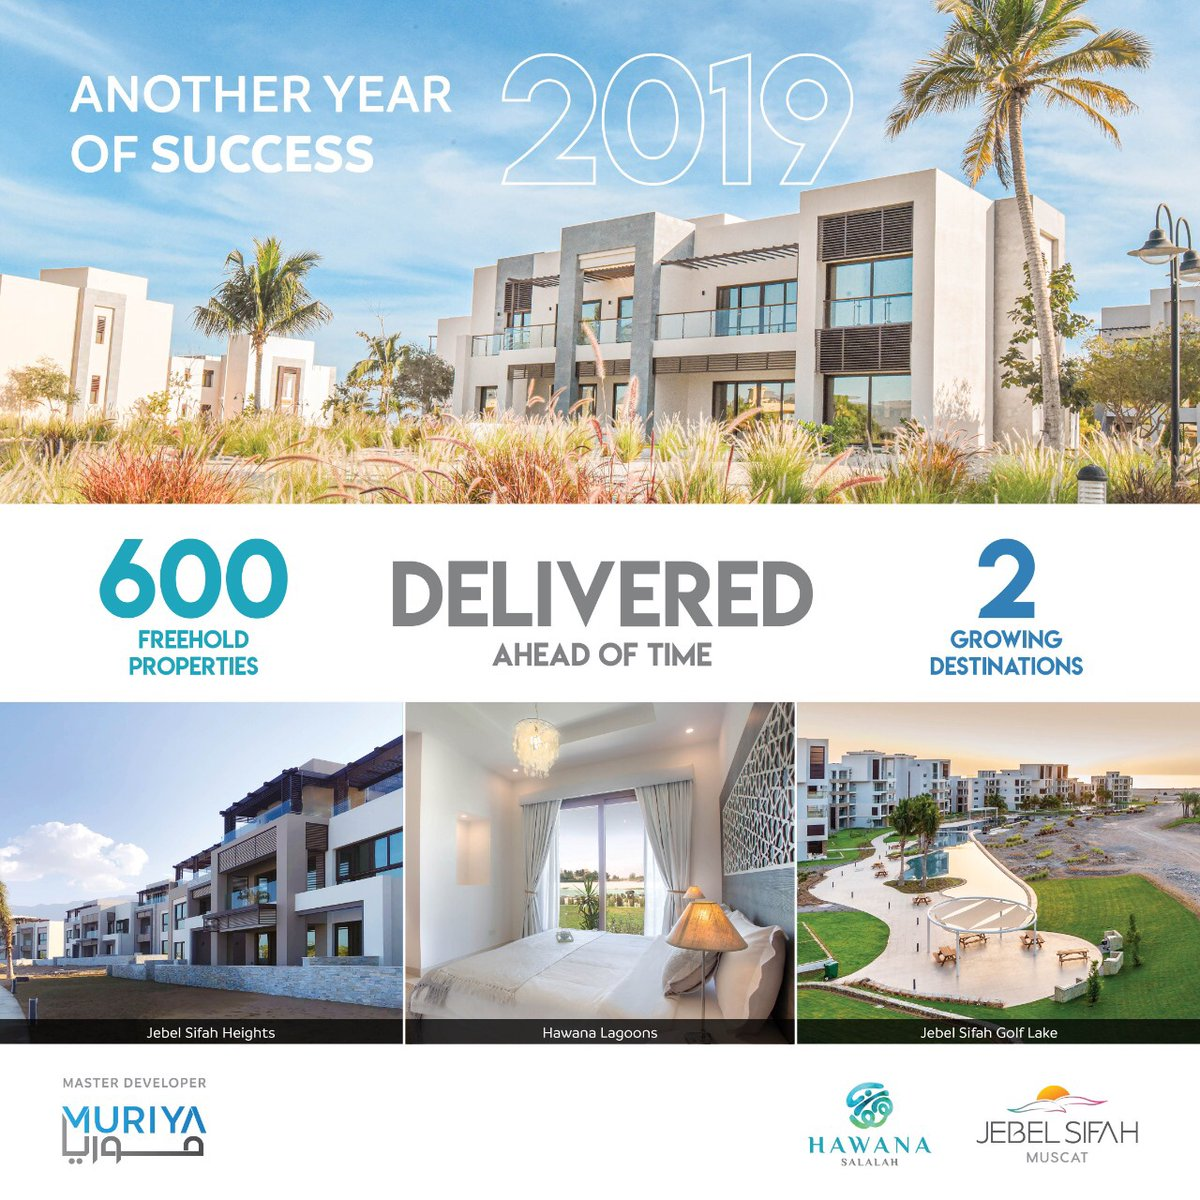 Muriya proudly continues to deliver more than 600 freehold properties since the start of 2019. As we launch more projects at both of our destinations #HawanaSalalah & #JebelSifah, we continually strive to the timely delivery of premium homes. https://t.co/8MgUtkutAz